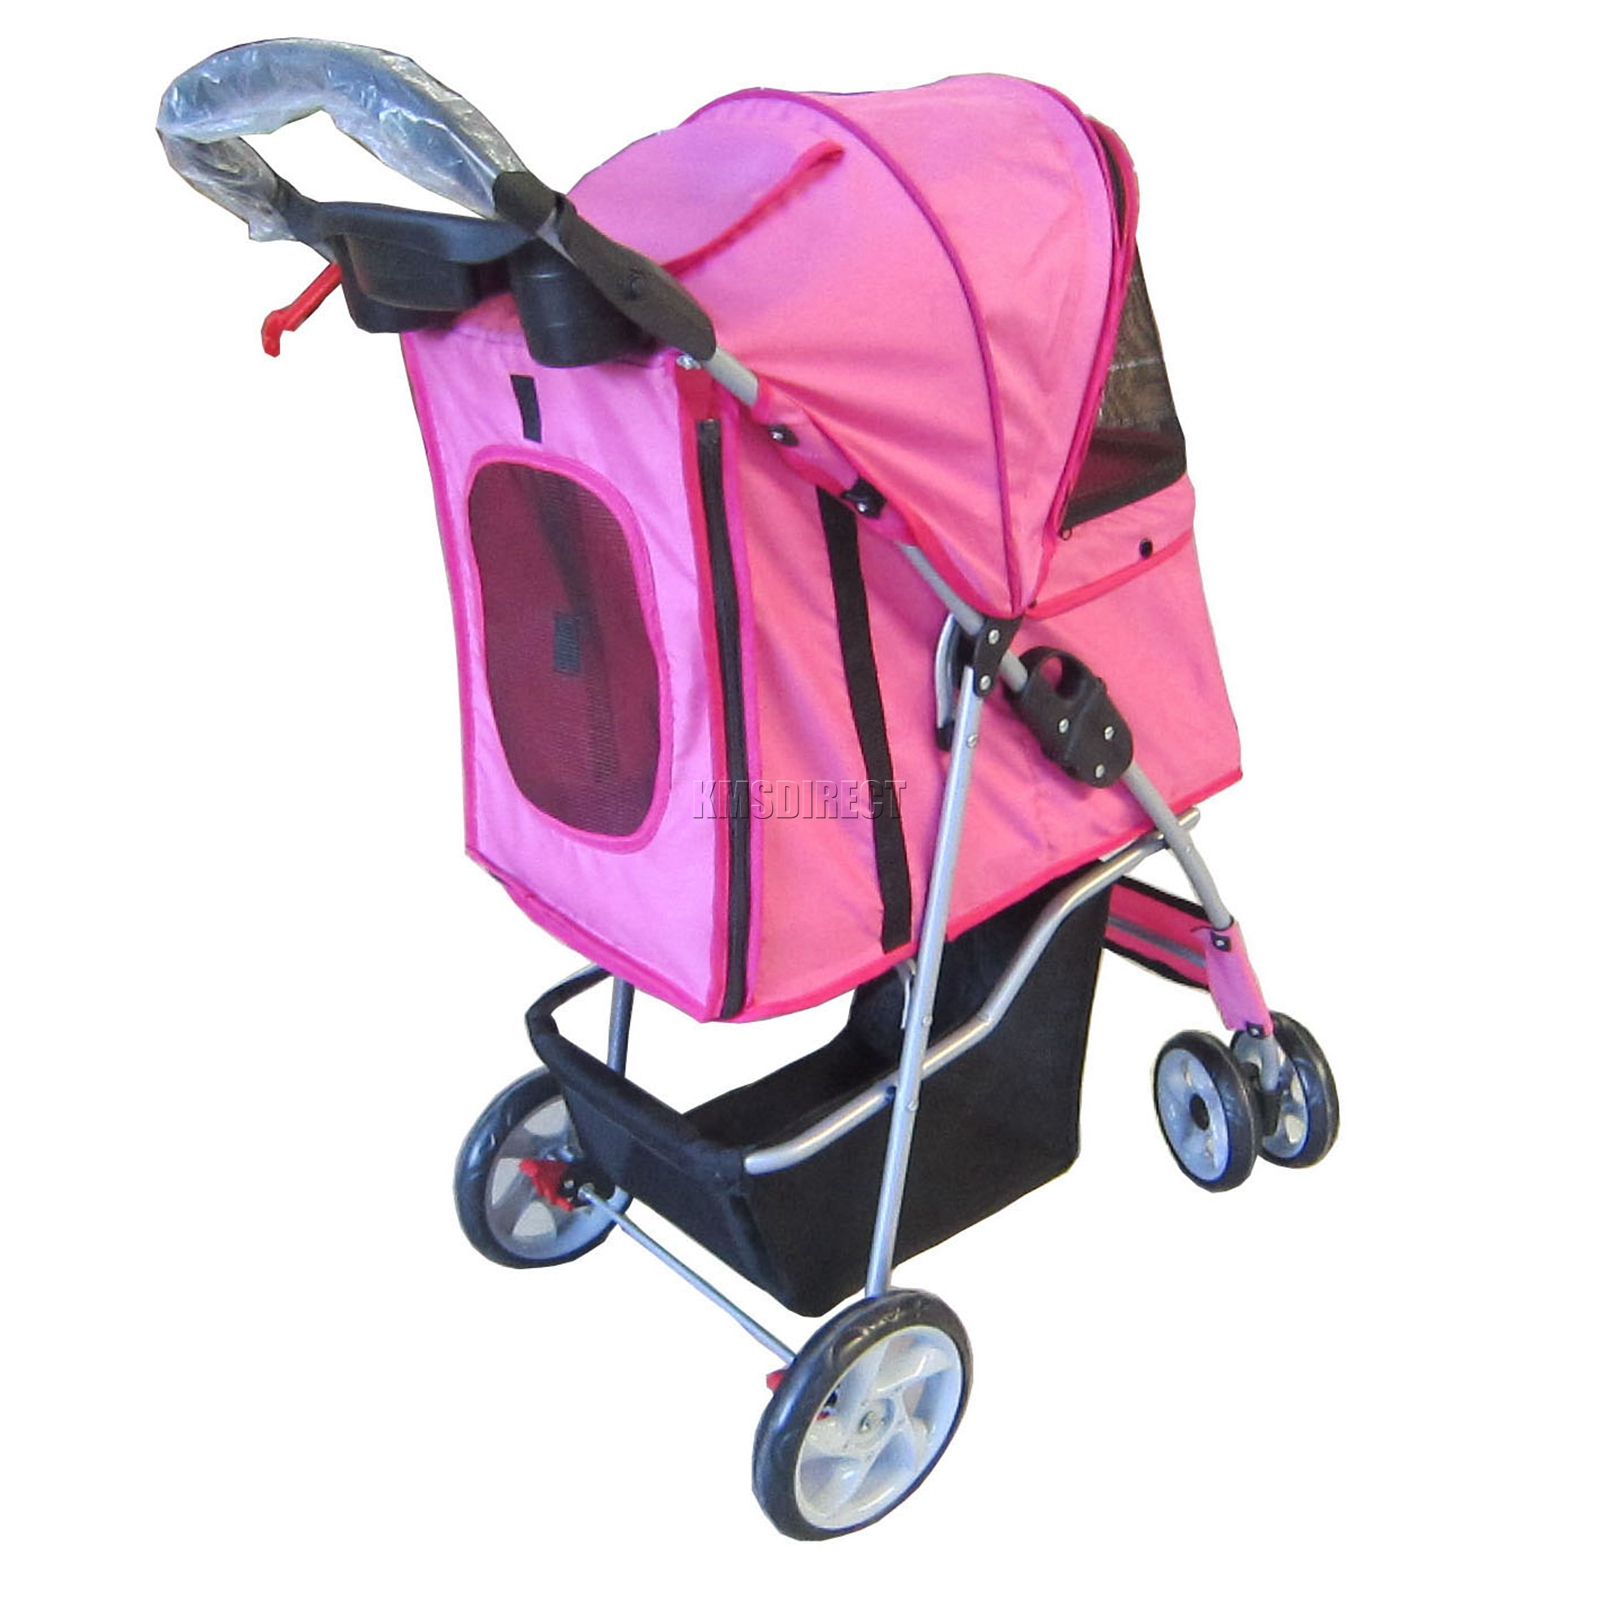 Dog Strollers For Dachshunds Pet Pushchair – Dog Puppy Cat Pram – Travel Buggy Stroller